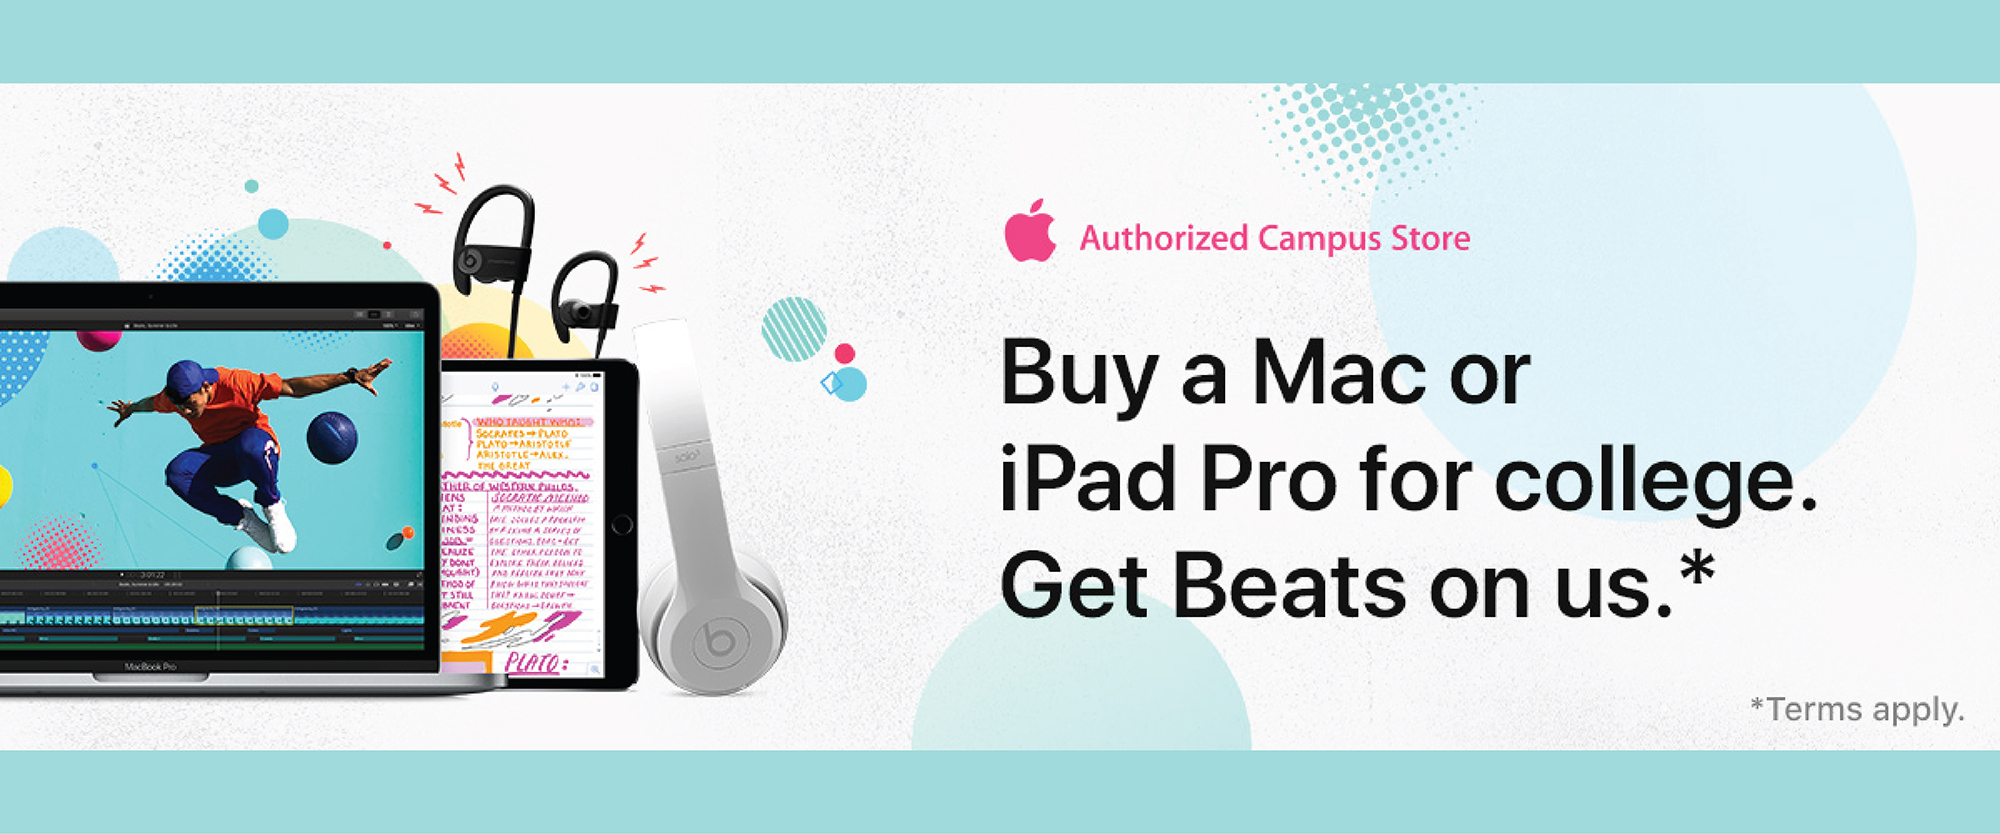 Buy a Mac or iPad Pro for college,get Beats on us